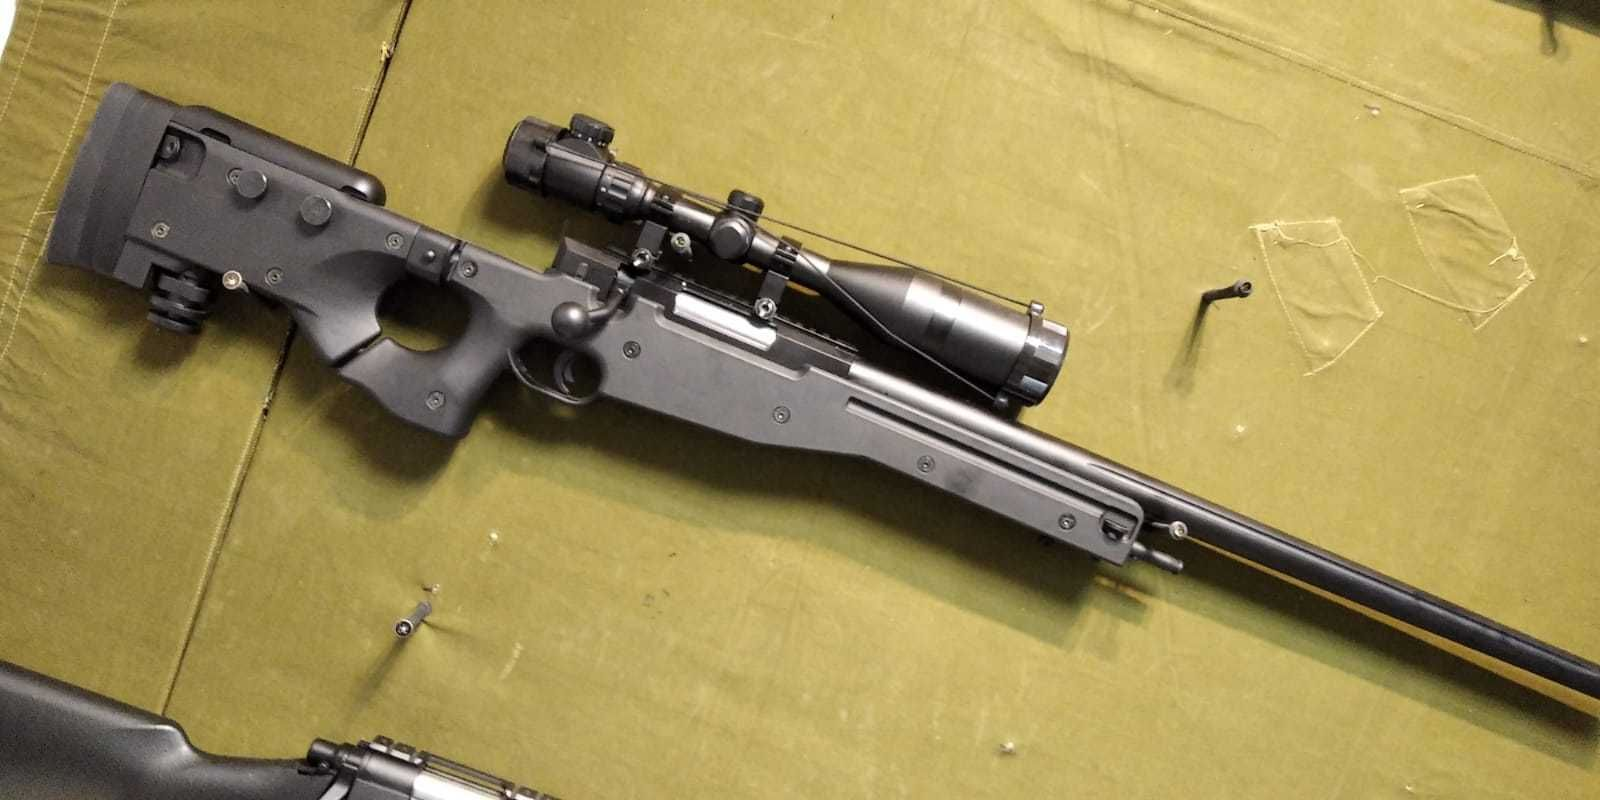 Pusca sniper L96 CM706 black 2,7Joules  Upgraded CYMA